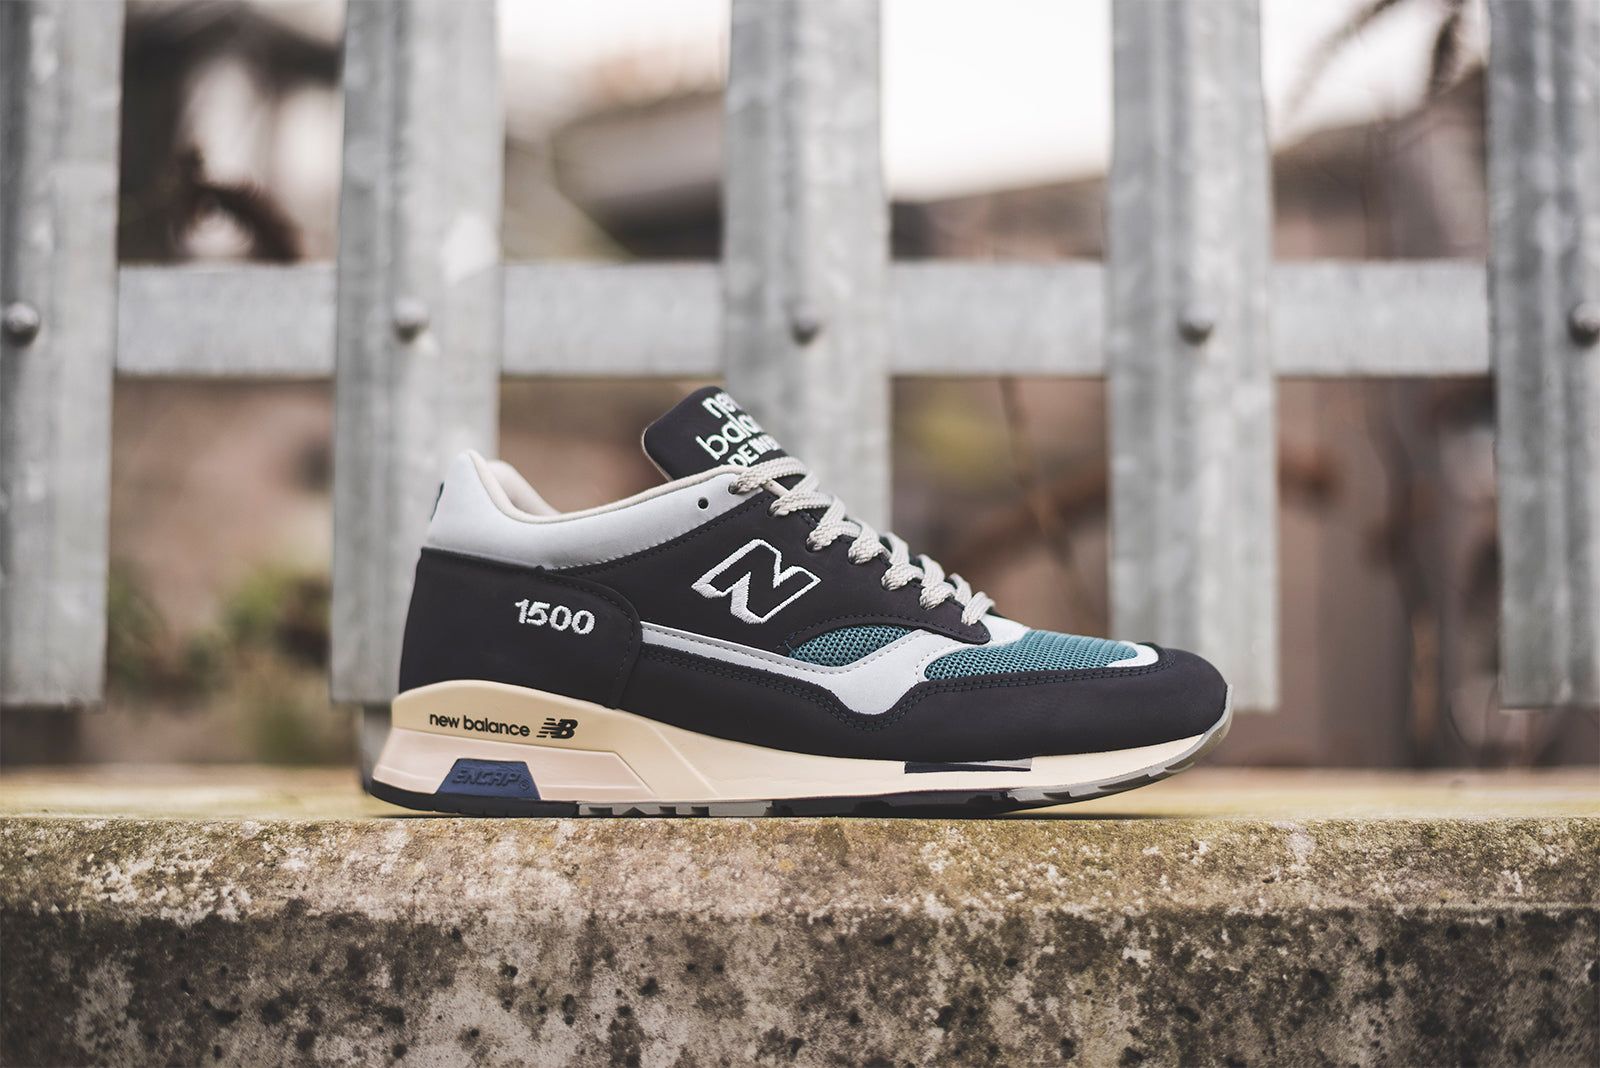 premium selection f743a 8ea0a In Focus: New Balance M1500 OGN & M1530 OGG – Hanon